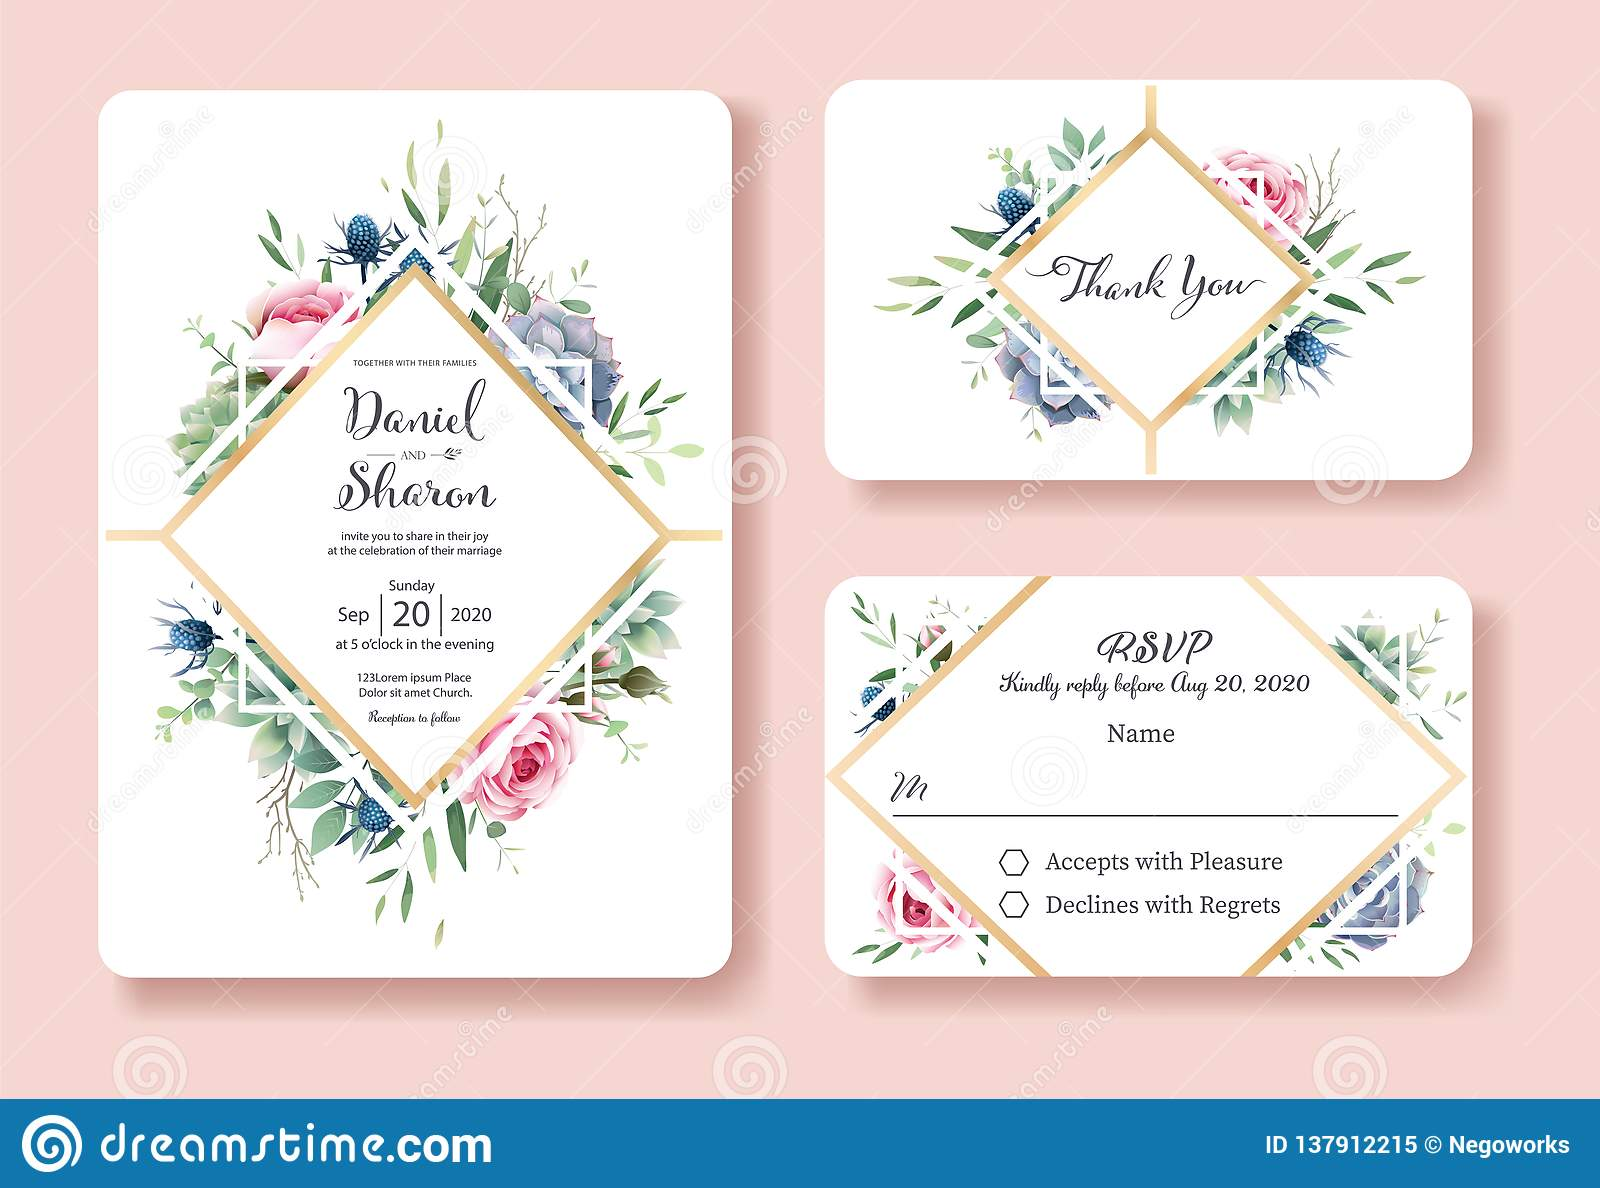 Wedding Invitation Thank You Rsvp Card Design Template Queen Of